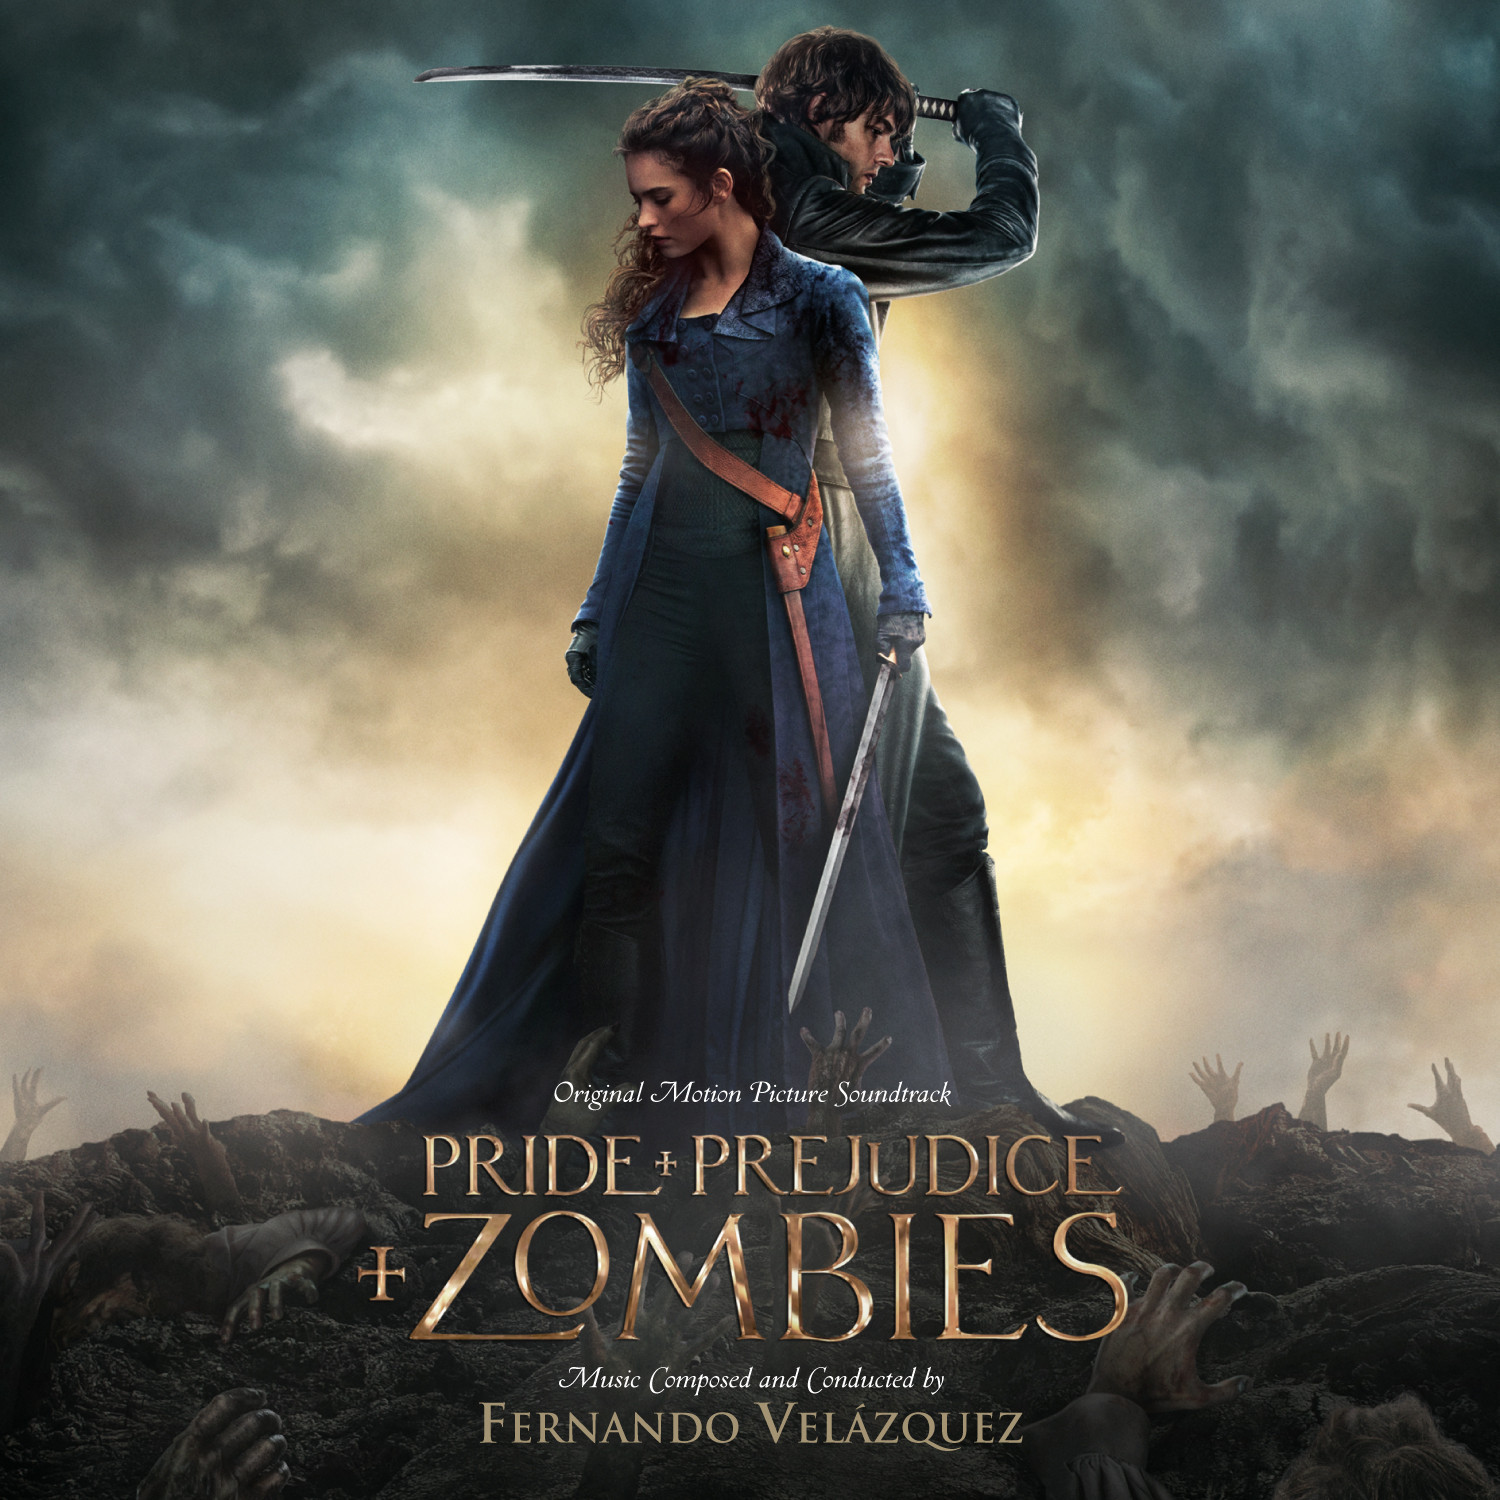 pride and prejudice and zombies movie soundtrack